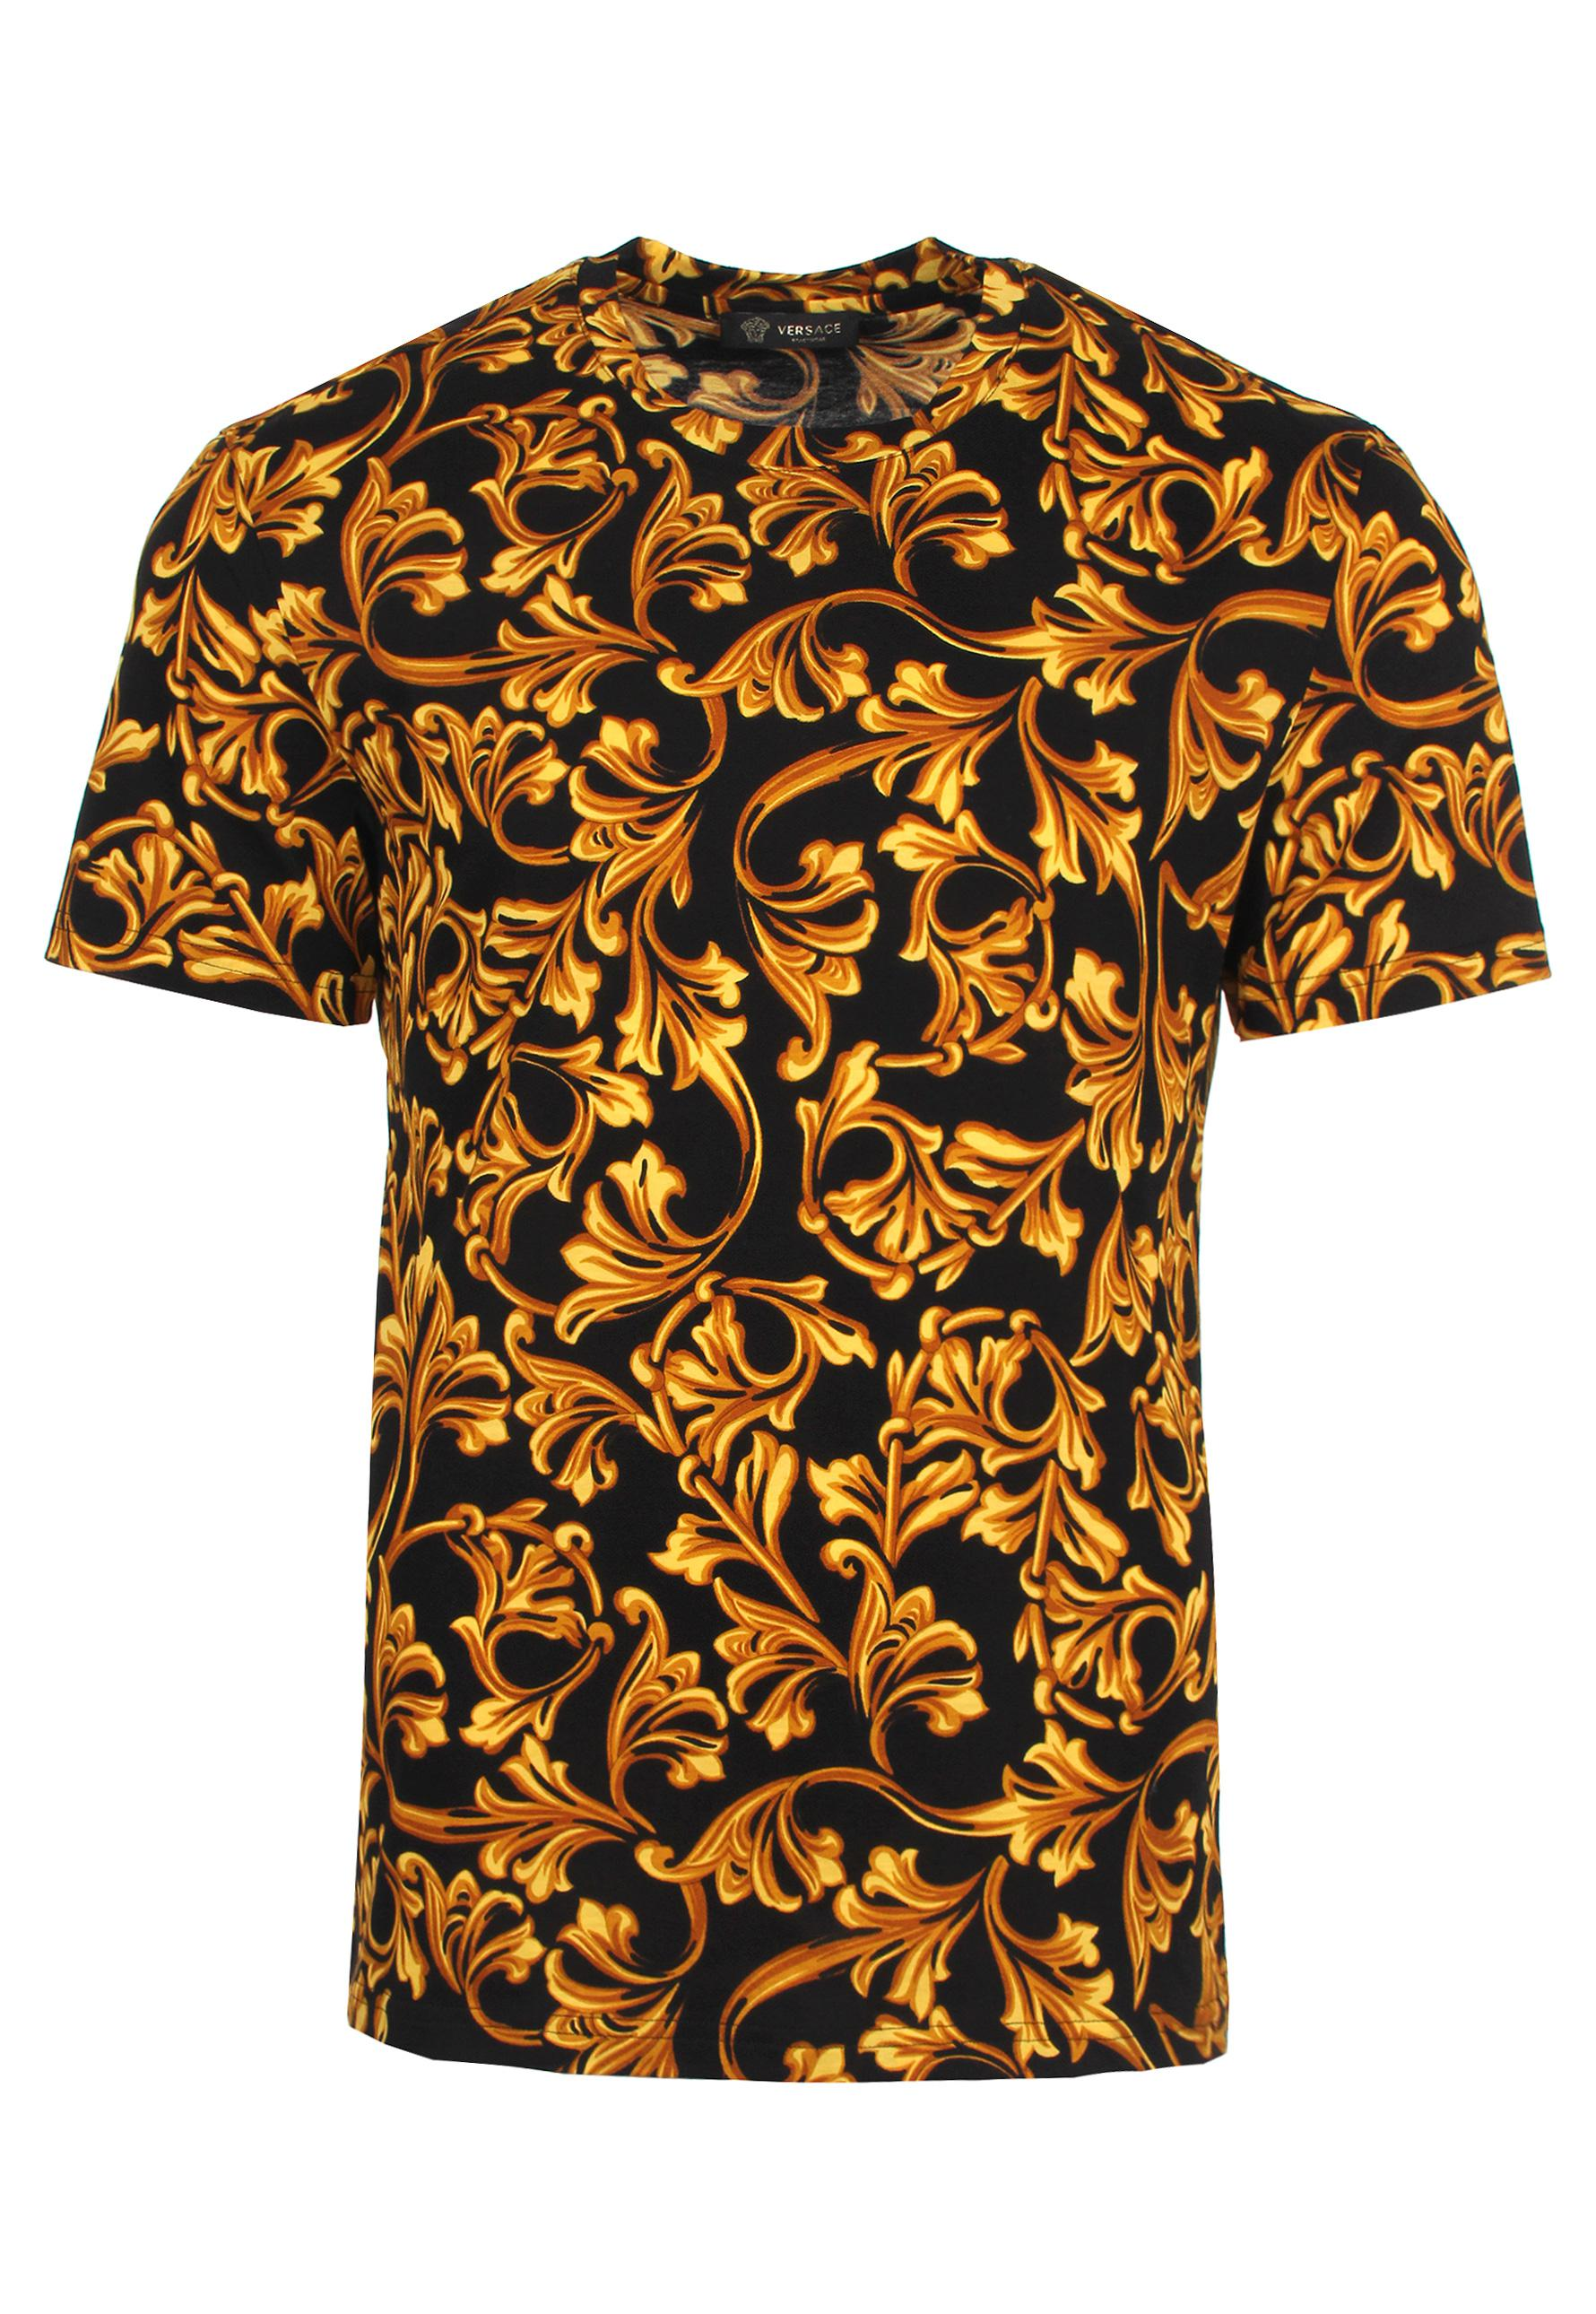 lyst versace all over baroque t shirt black gold for men. Black Bedroom Furniture Sets. Home Design Ideas